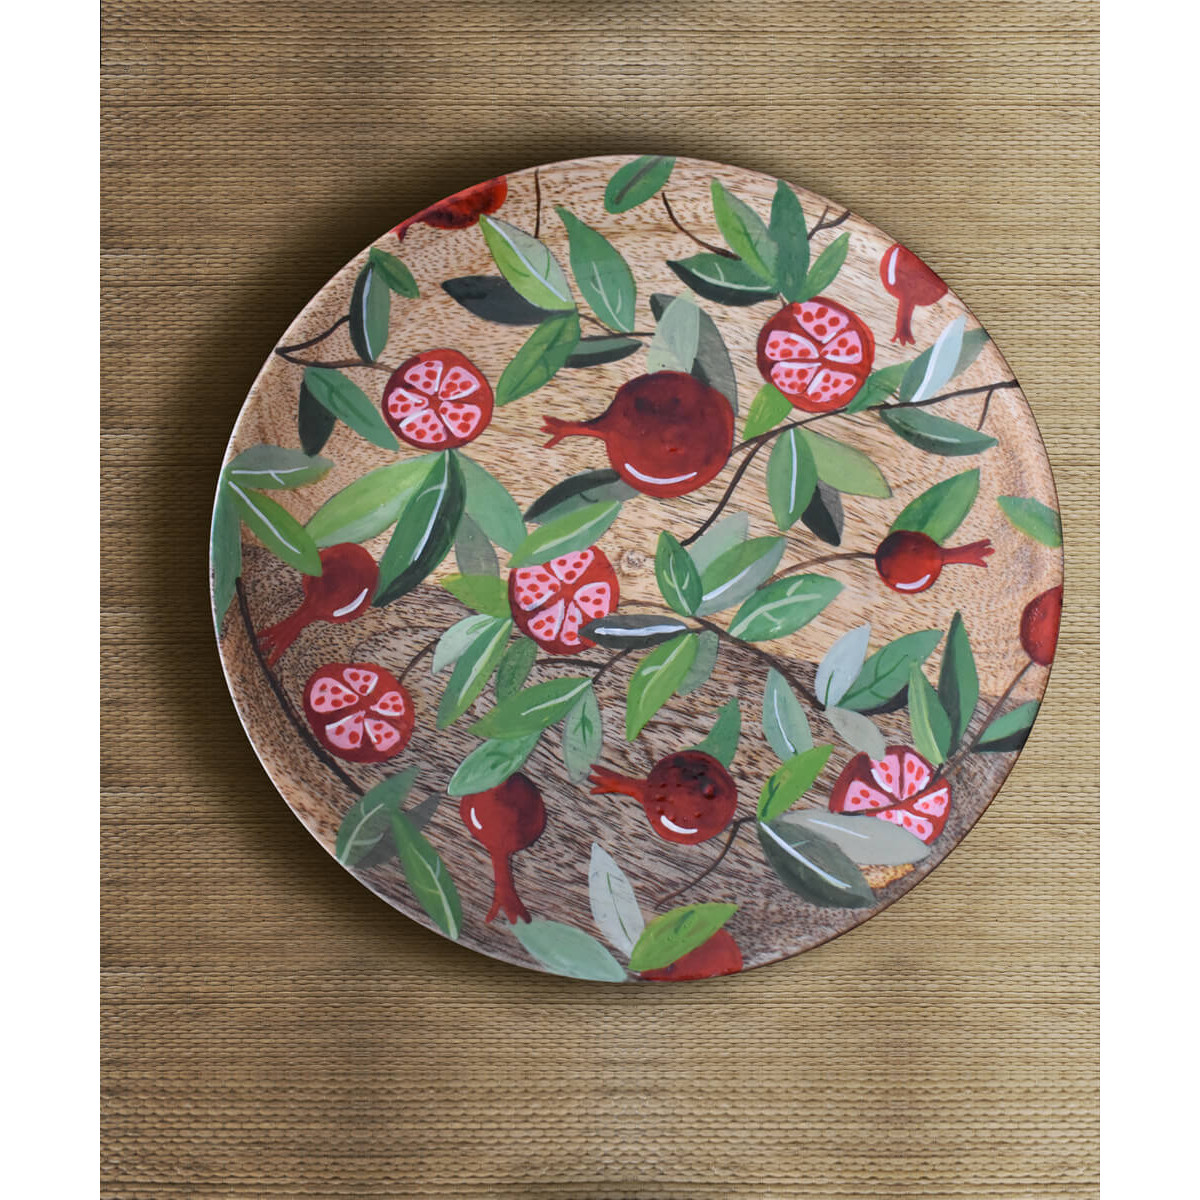 Fruit_Of_Summer_Wall_Plate--Tangy Tinge-2236